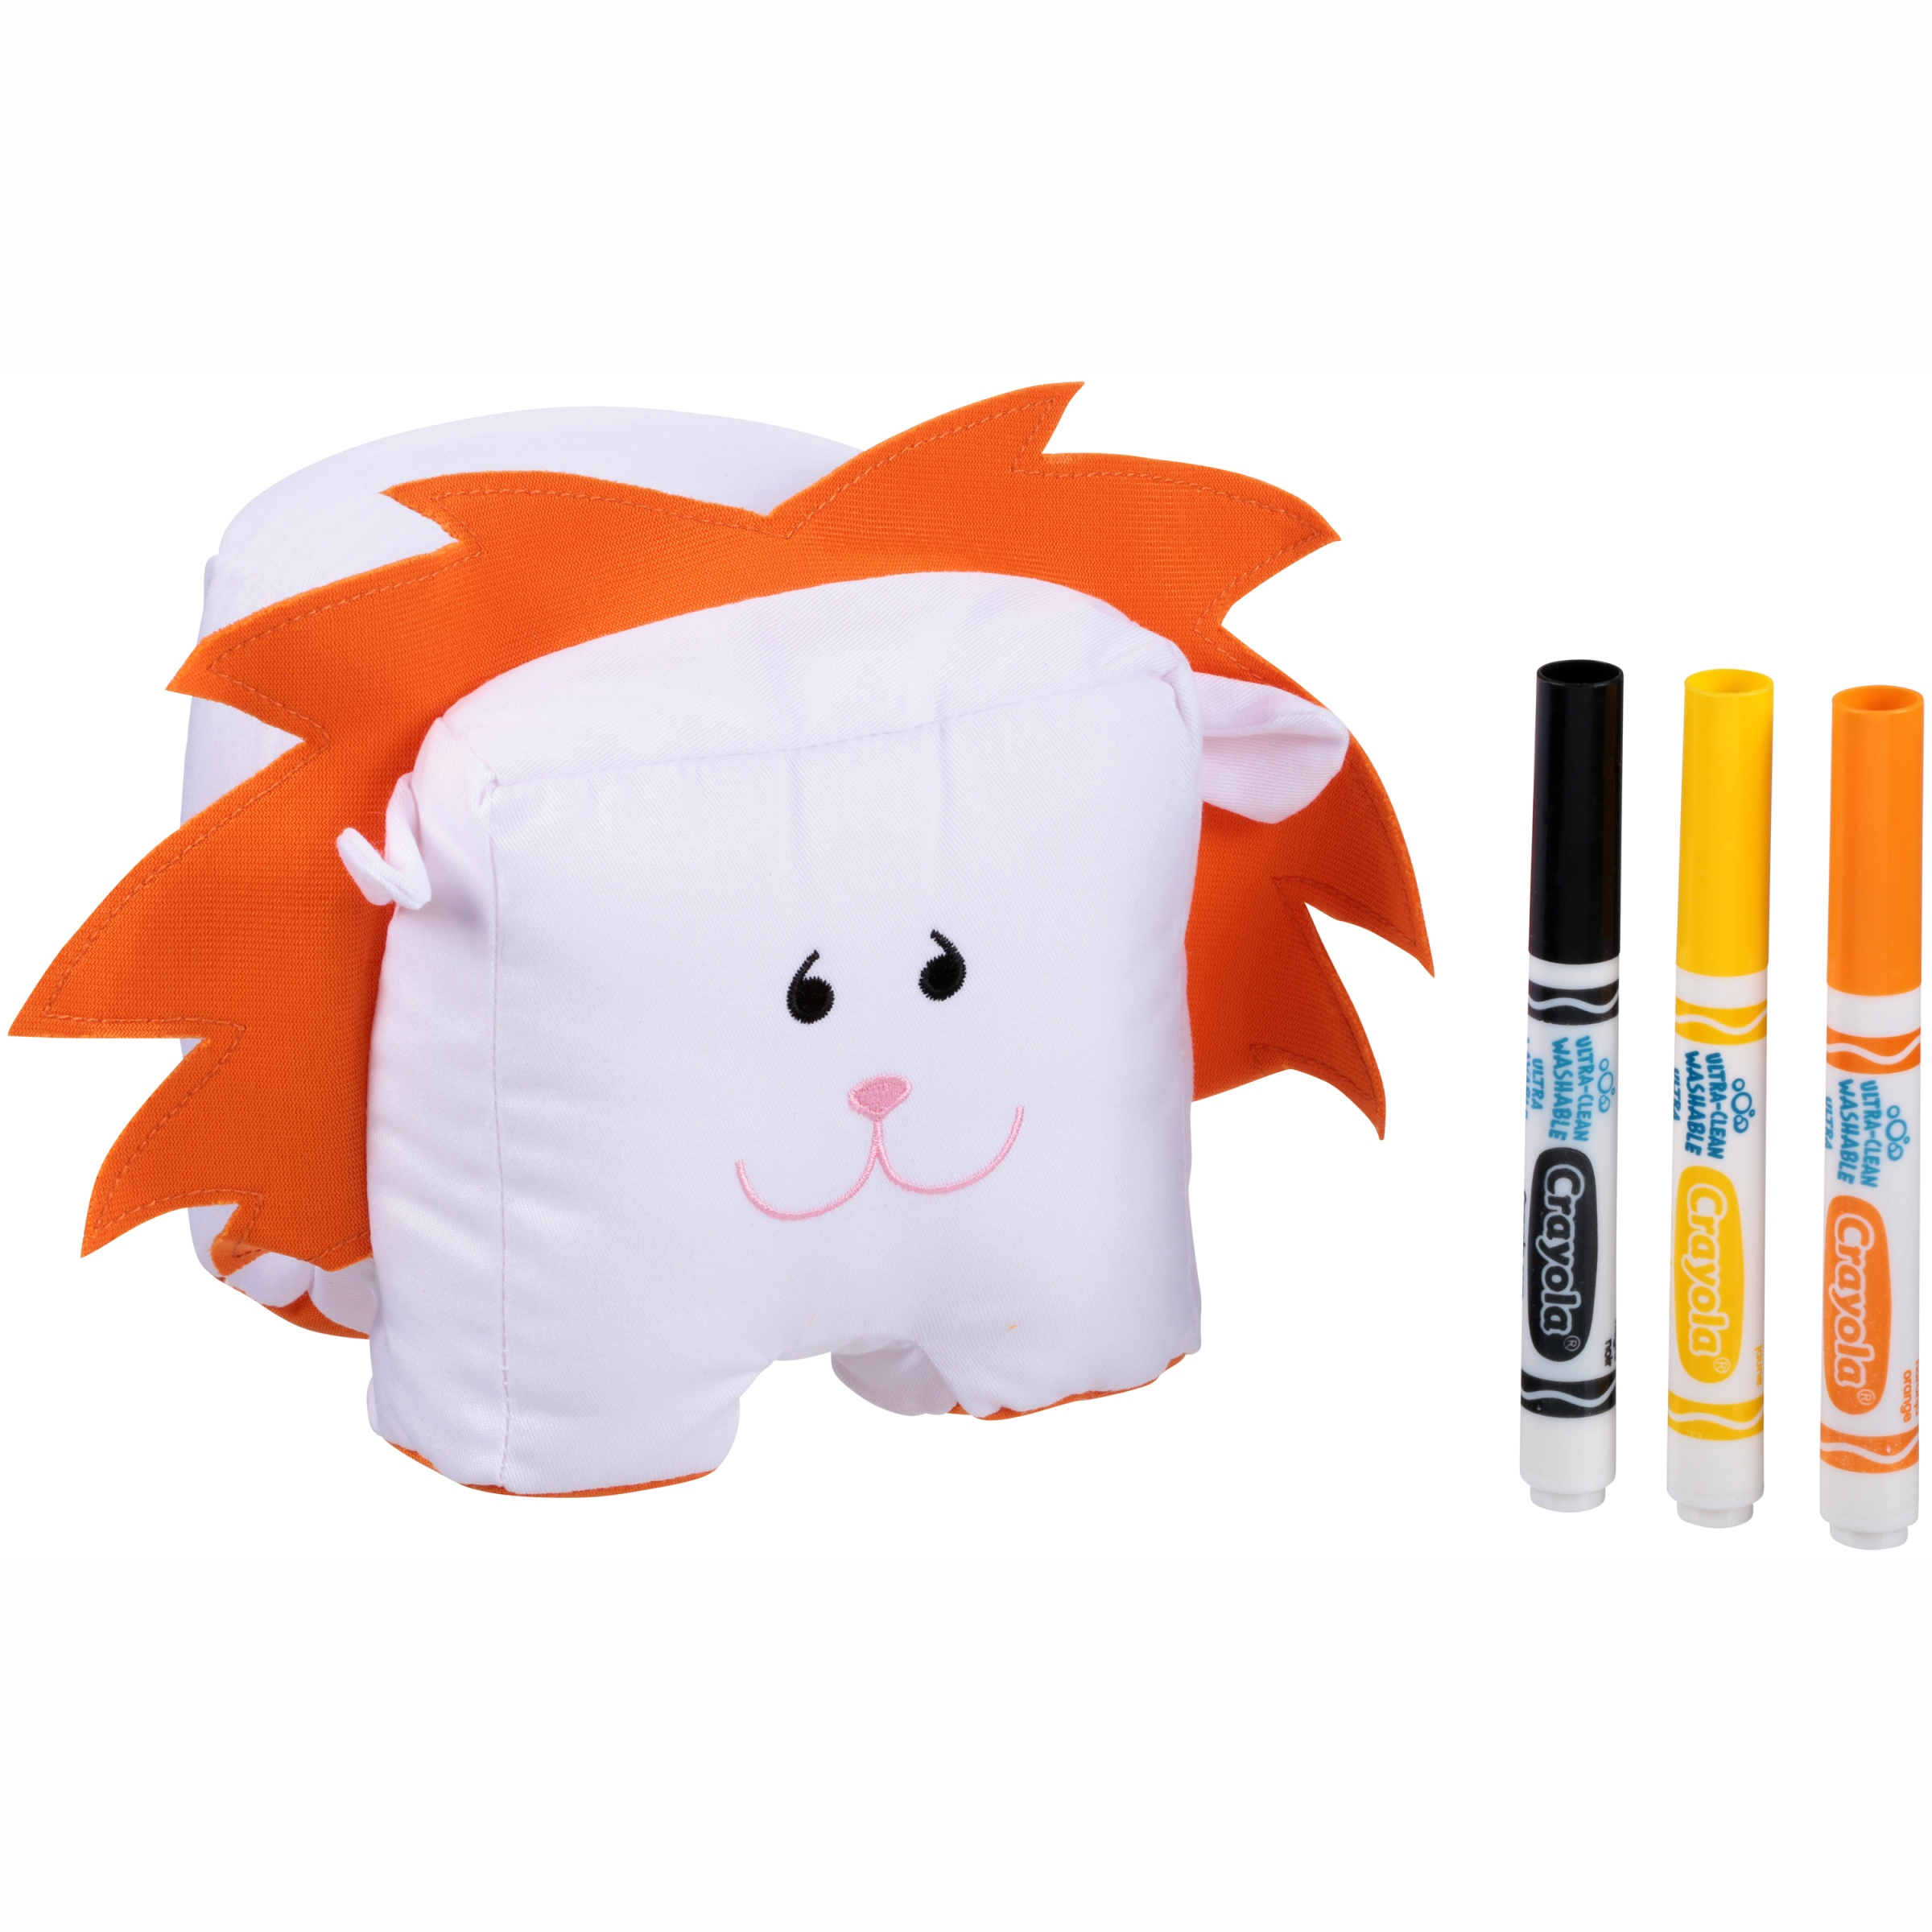 Crayola Doodlemals Scribbles the Lion Colorable Toy Set 4 pc Pacl by Crayola